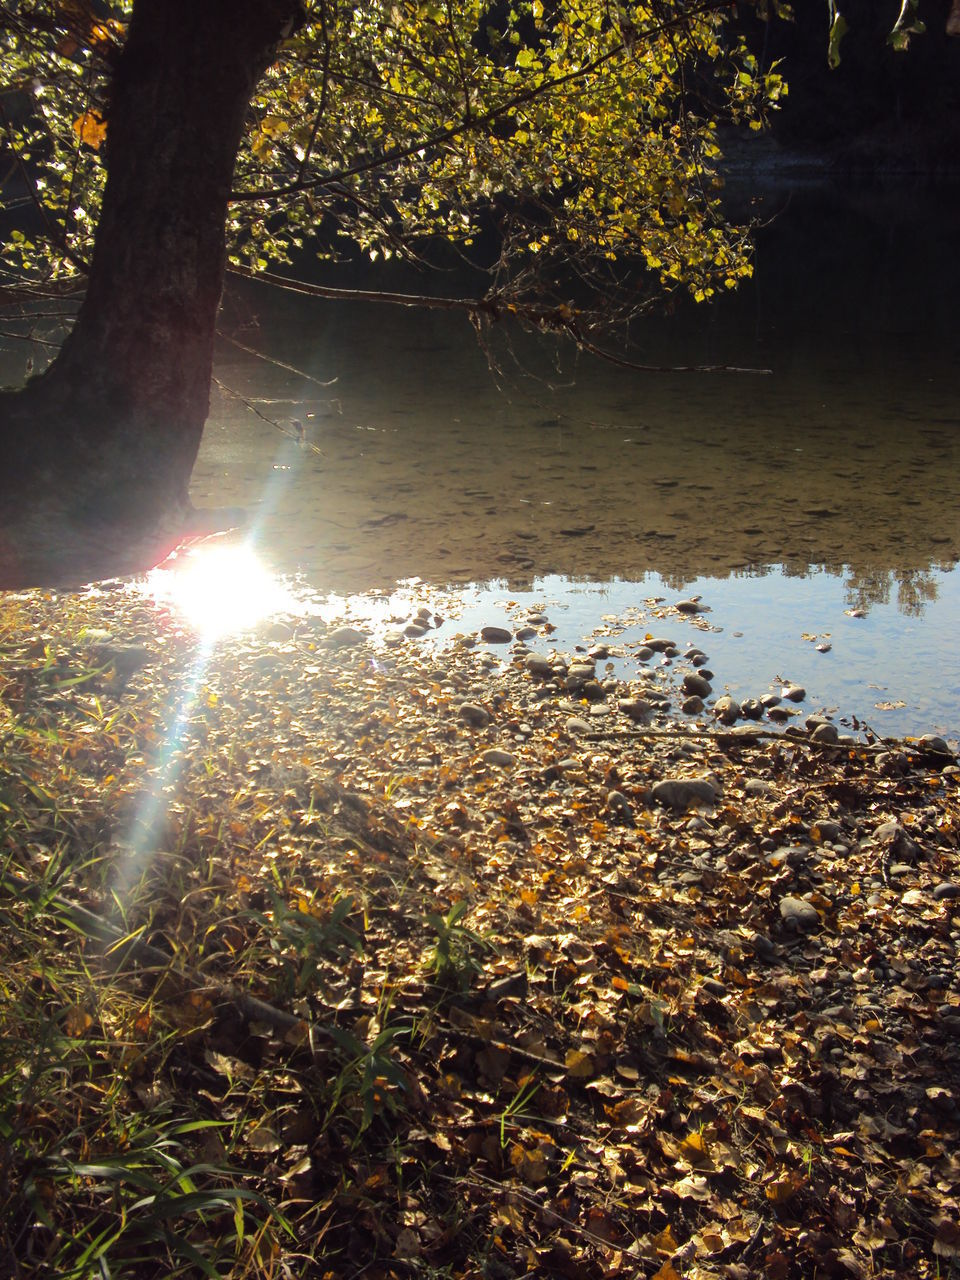 SUNLIGHT STREAMING THROUGH TREE IN FOREST DURING AUTUMN